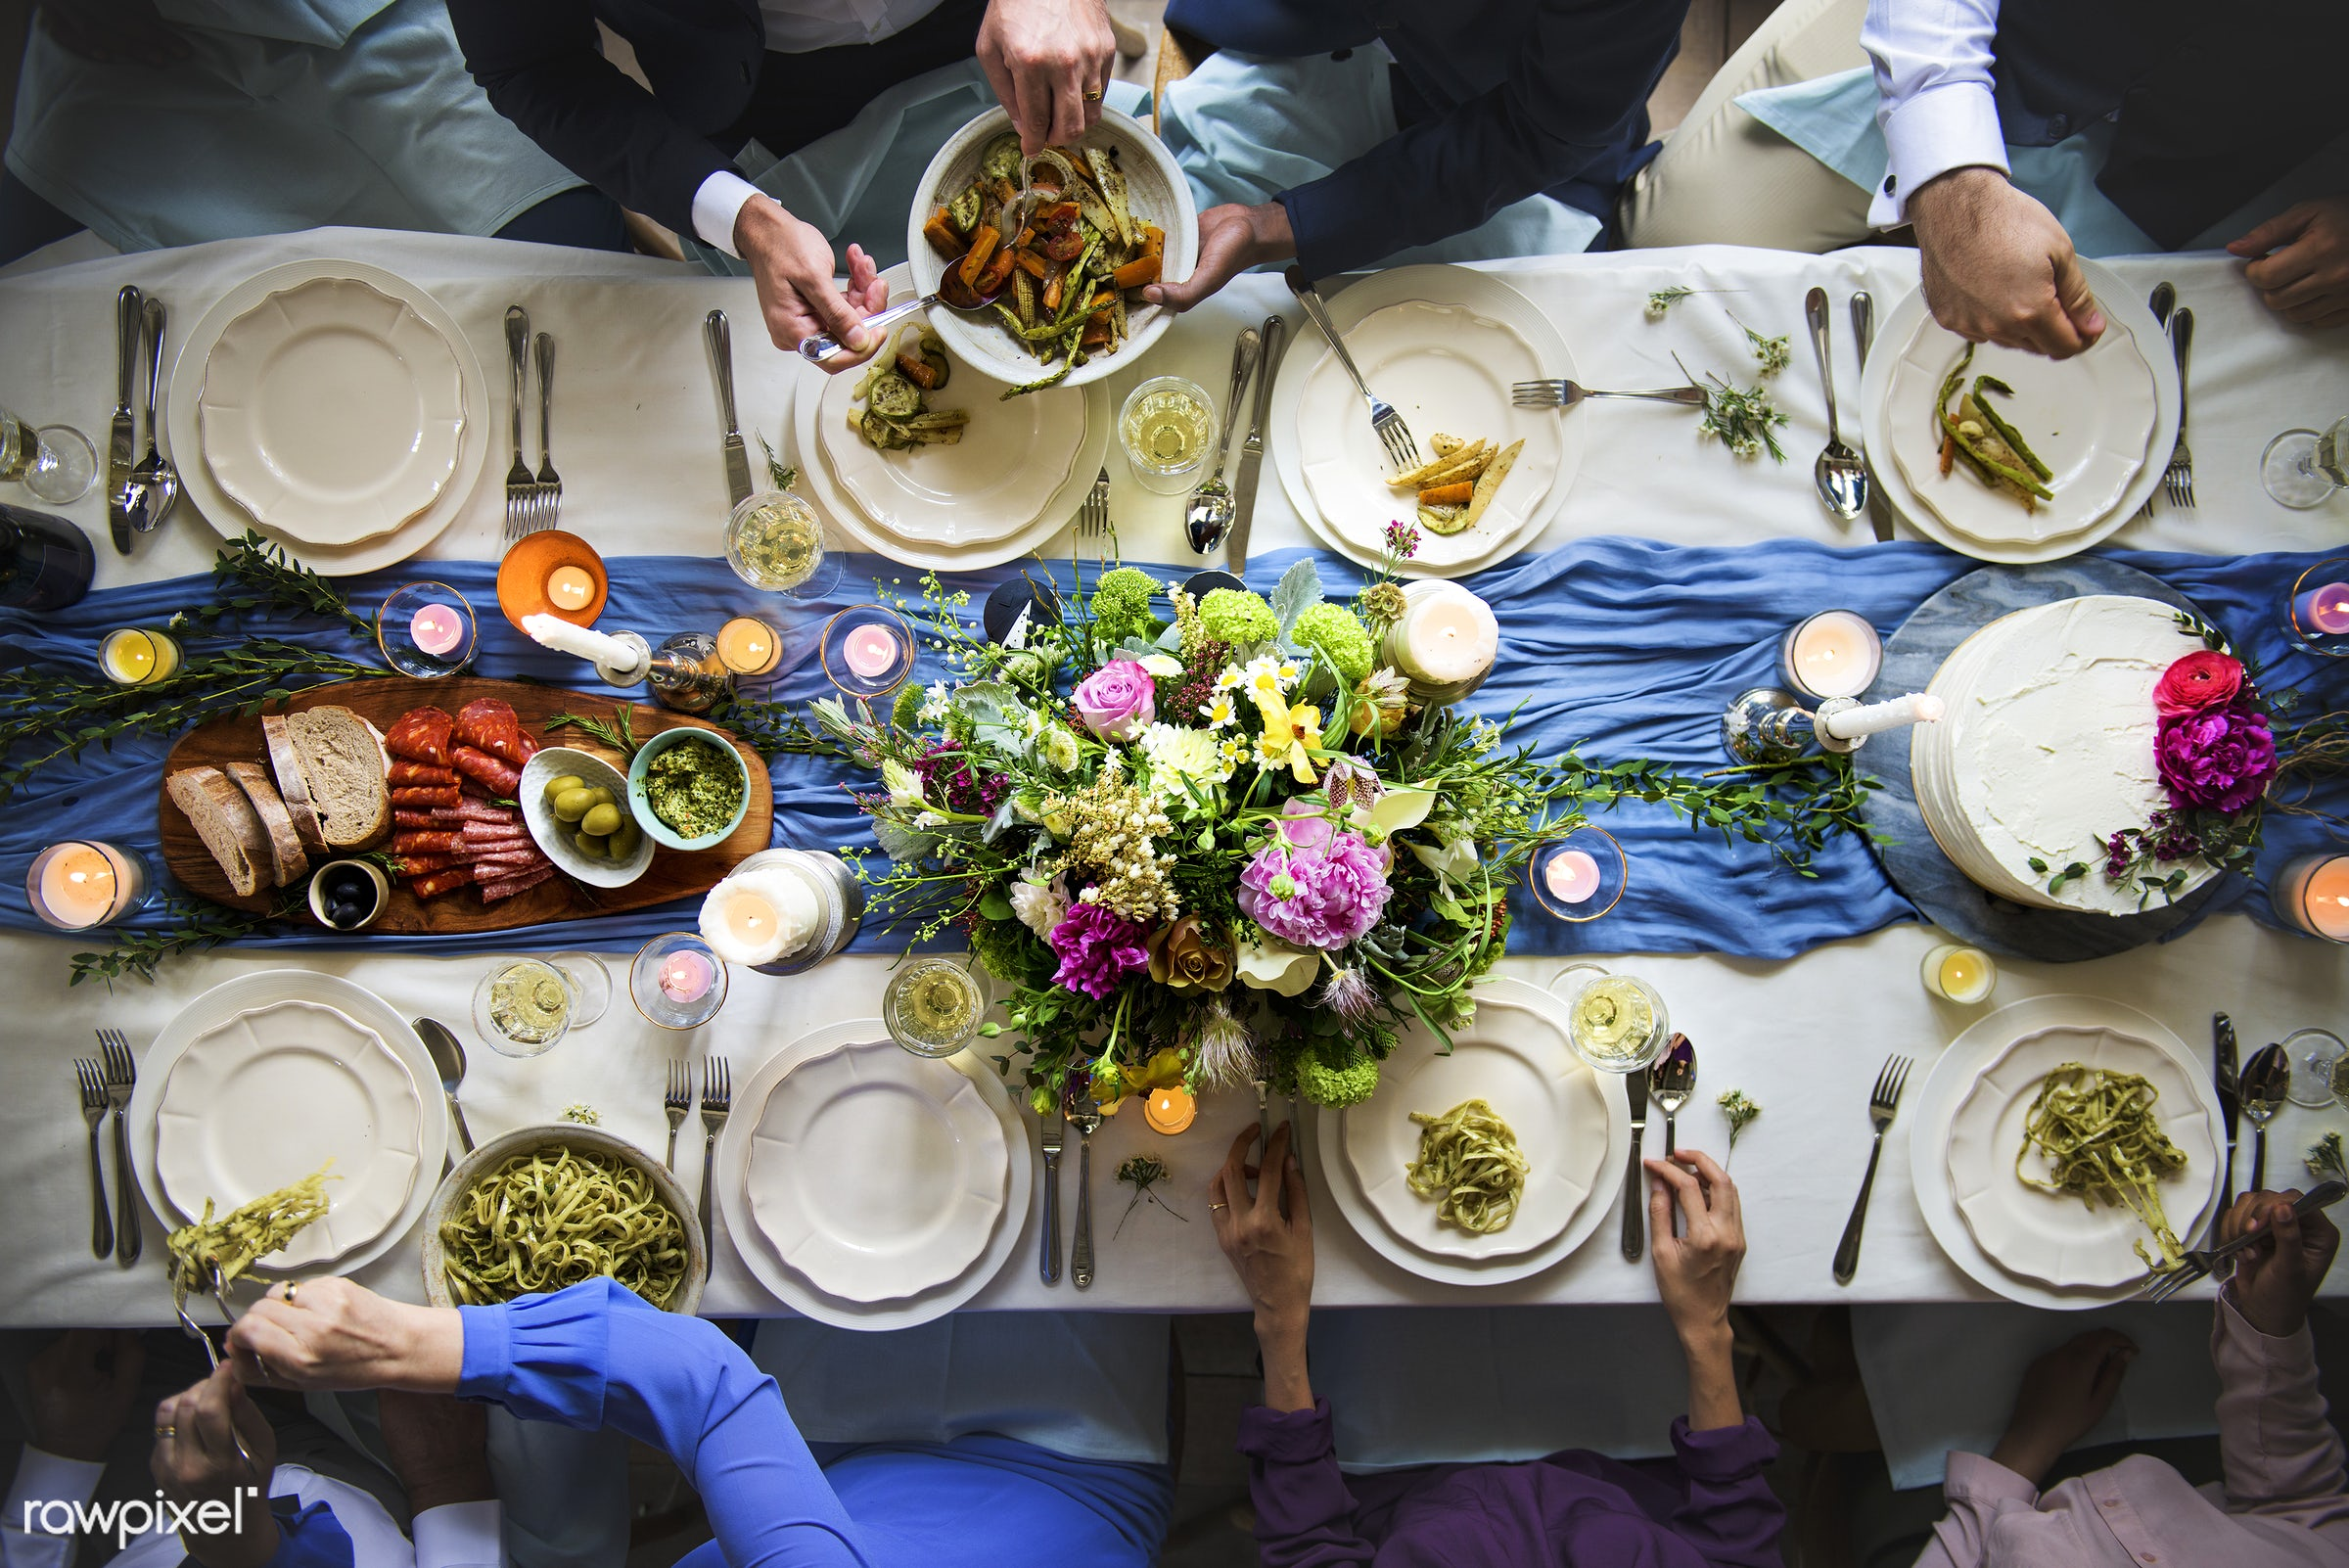 aerial view, celebration, diversity, eat, event, flat lay, food, friends, gather, group, guests, hands, occasion, pasta,...